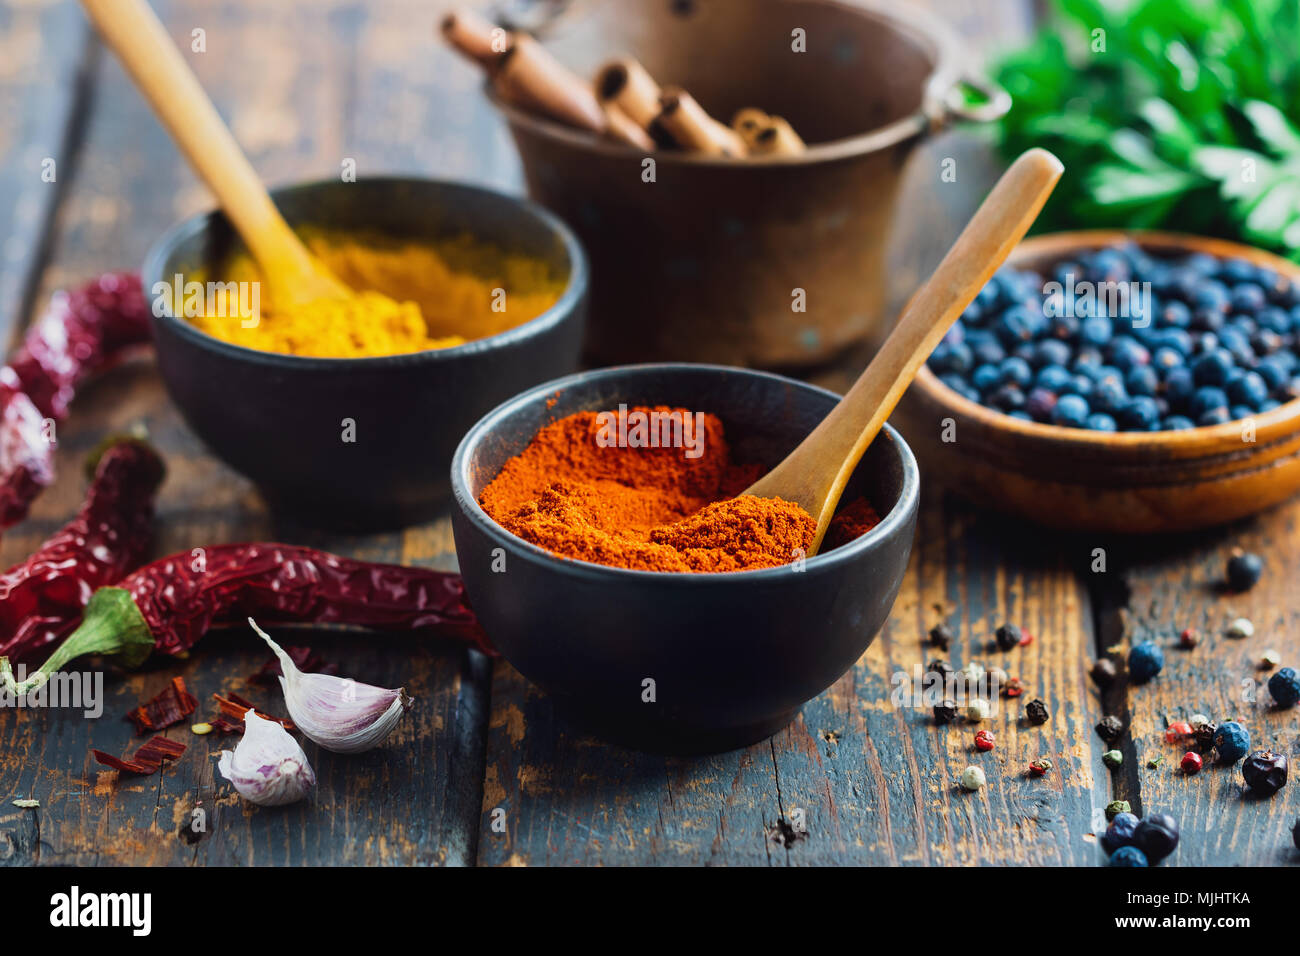 Small bowls filled with spices on rustic wood table. Various ingredients on table. - Stock Image